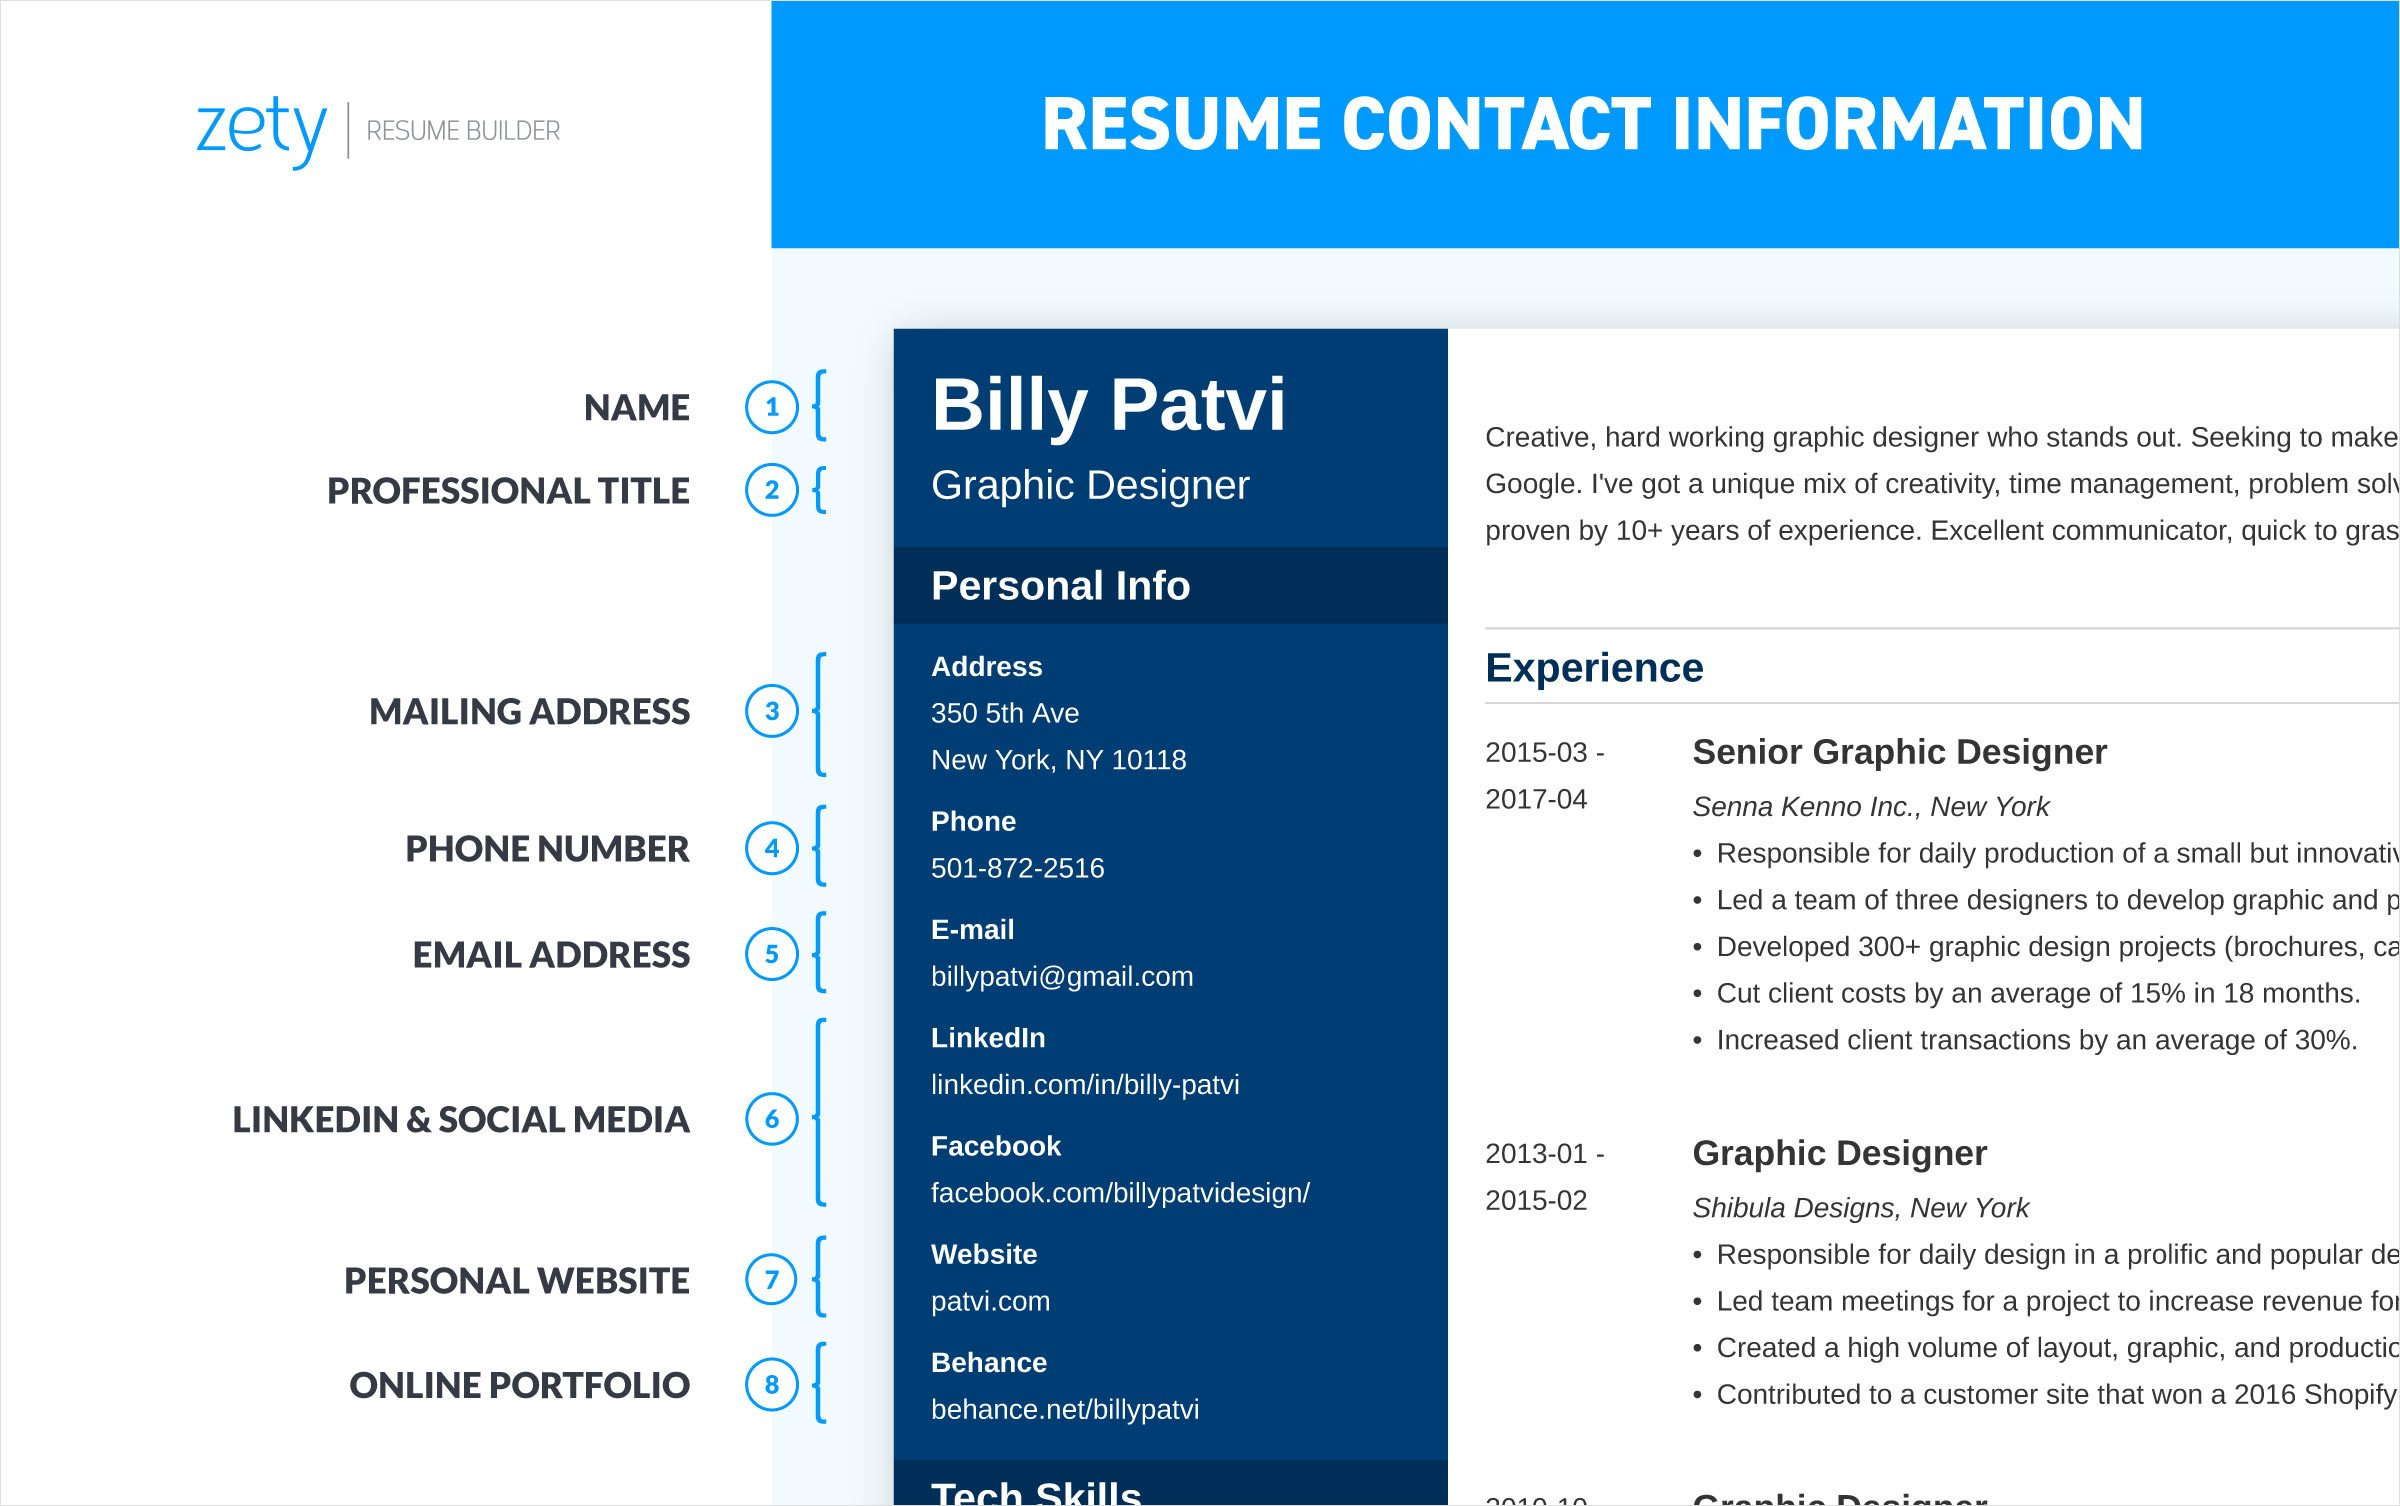 How To Make A Resume For Job From Application Interview In 24h